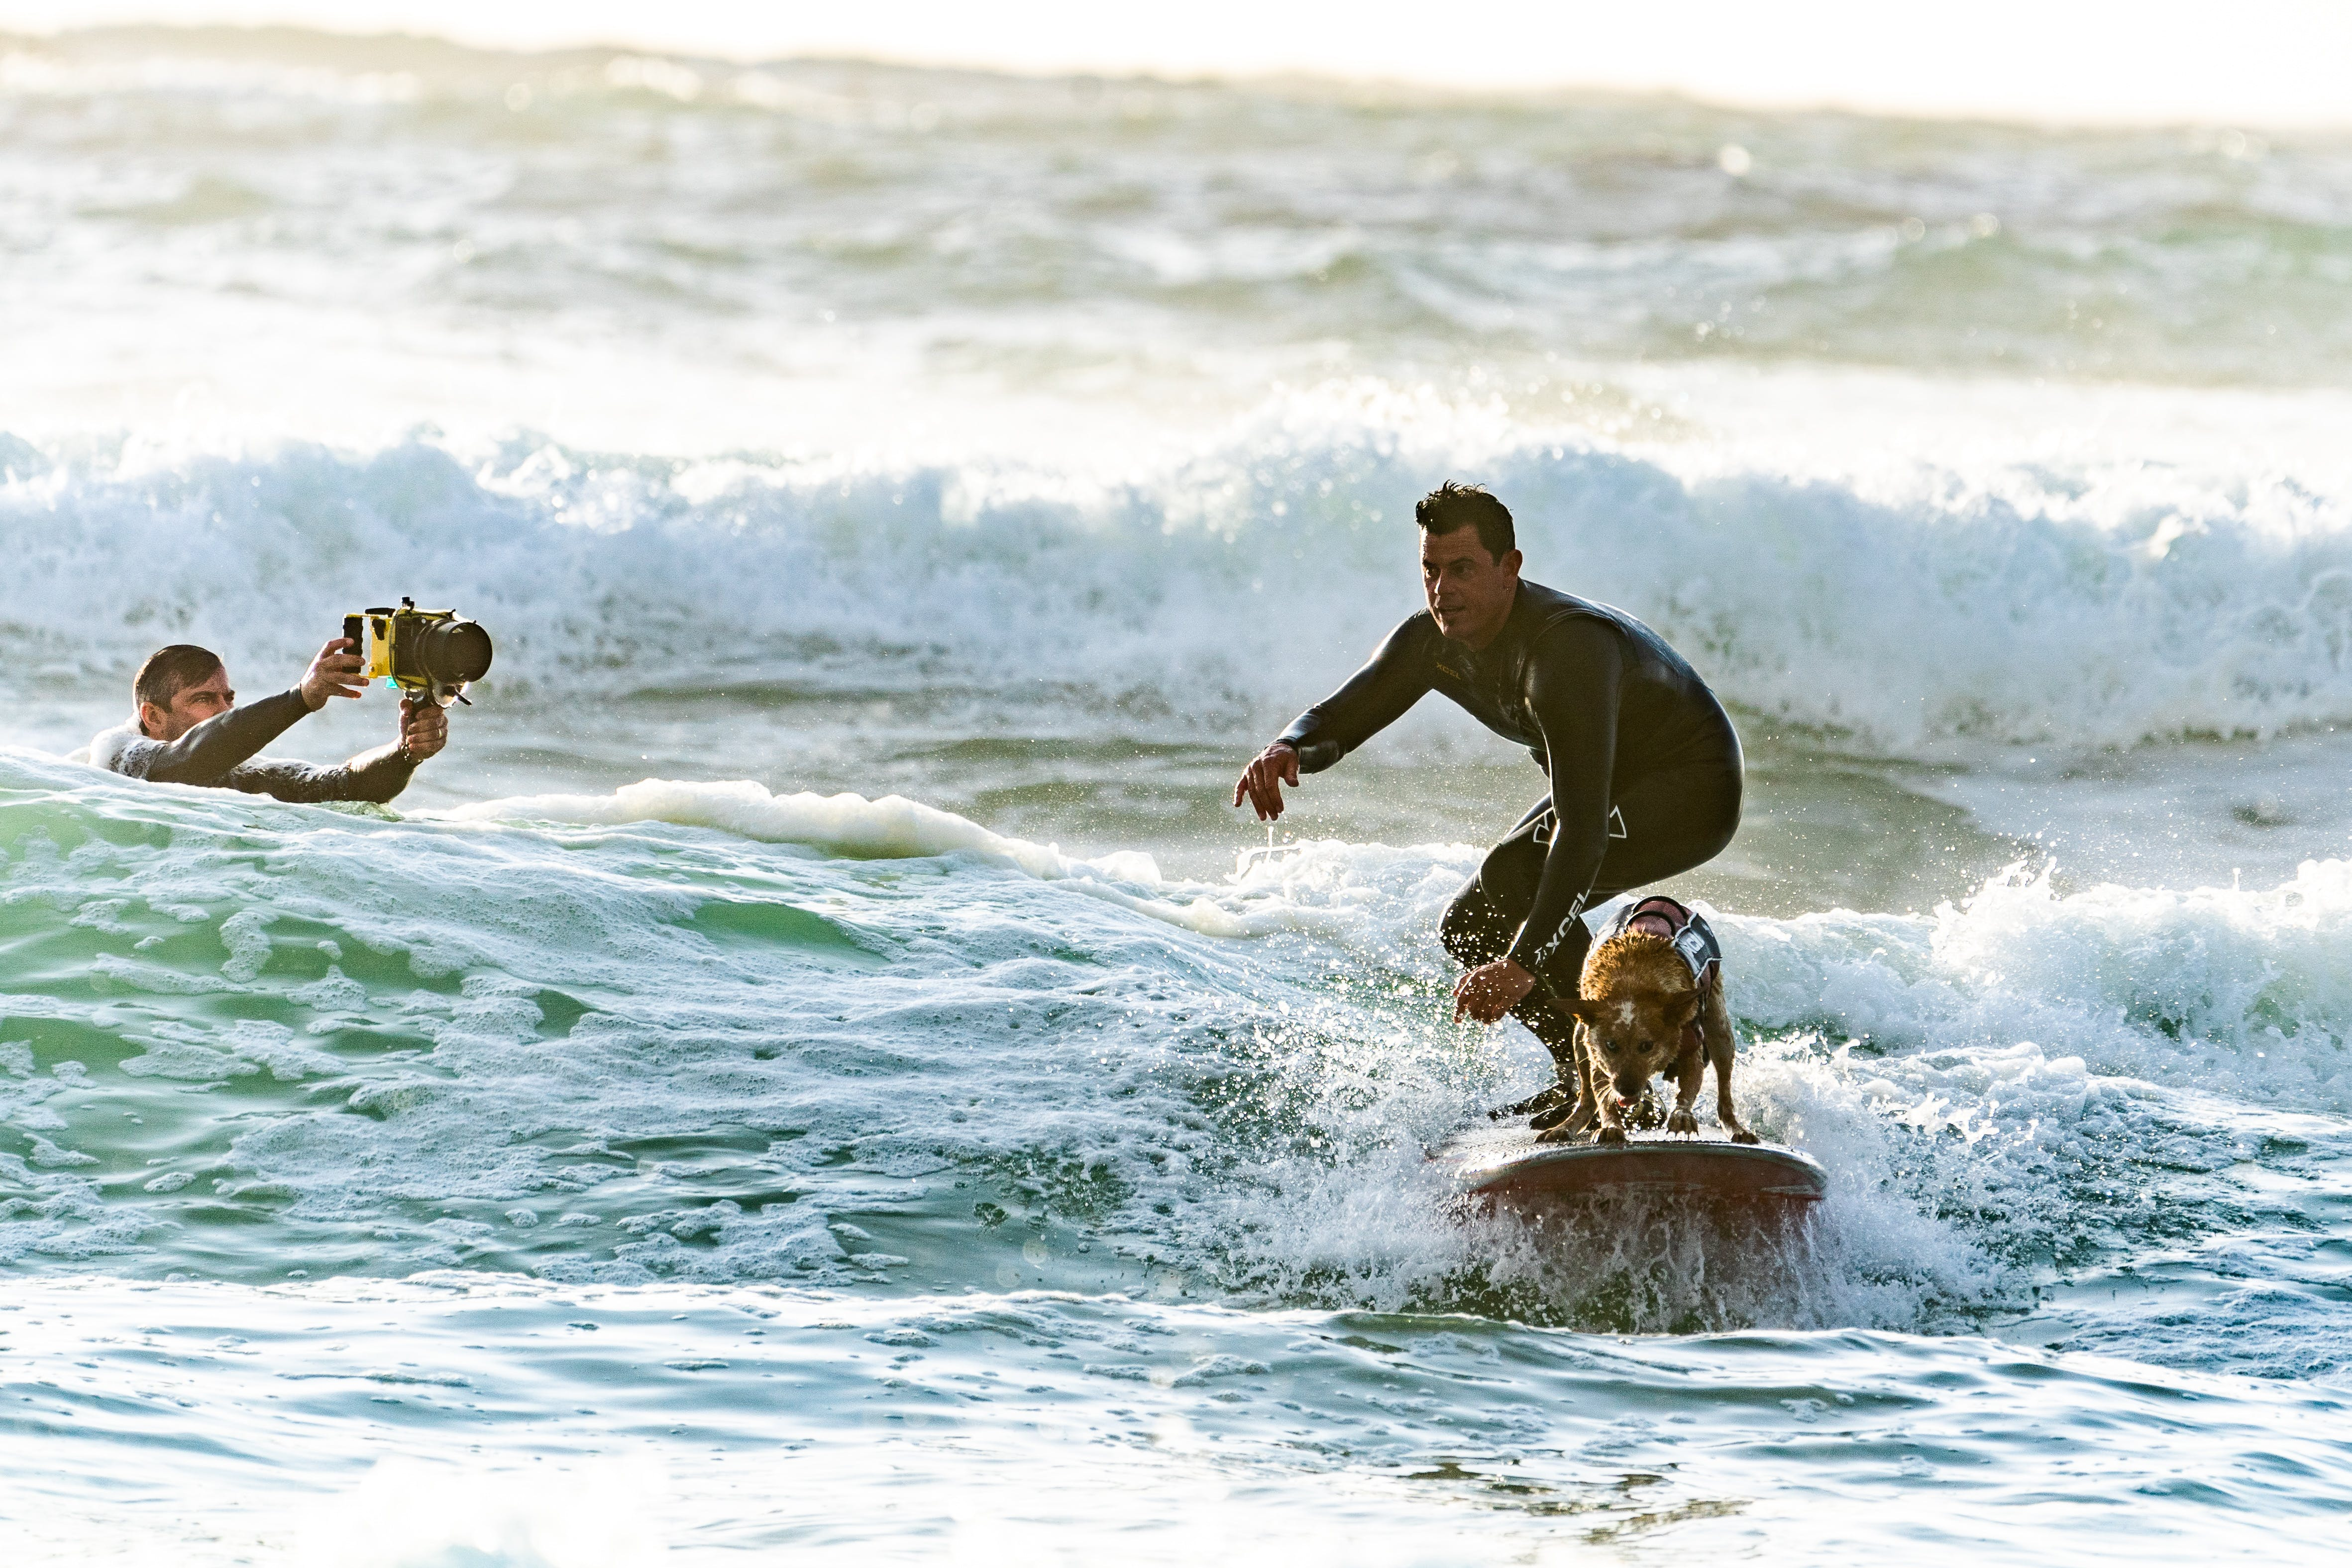 Surfer Surfing with his Surfer Dog